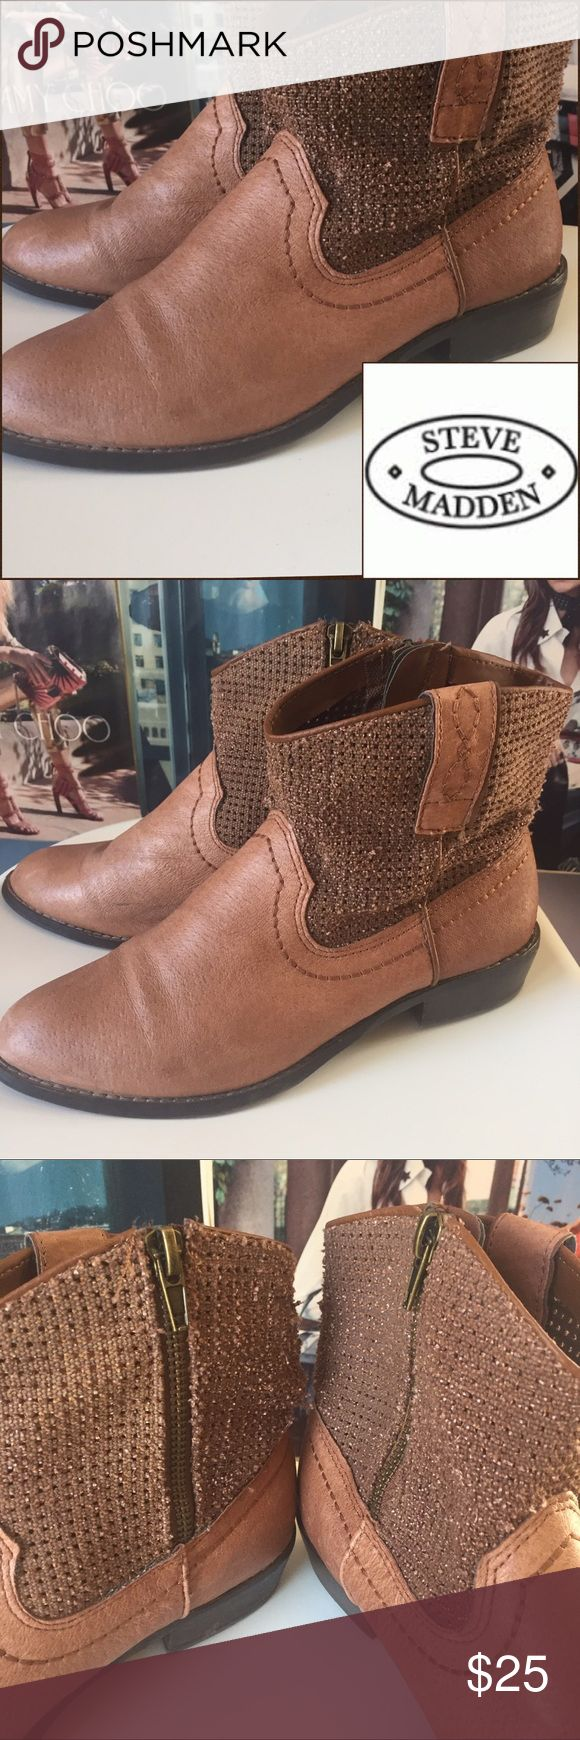 NEW | Steve Madden | FESTIVAL booties These Steve Madden boots are perfect for festival season!! Comfortable leather and cowboy boot heels with perforated leather tops to keep you cool. 7. Leather. Two small black scuffs, pictured. EUC. Steve Madden Shoes Ankle Boots & Booties